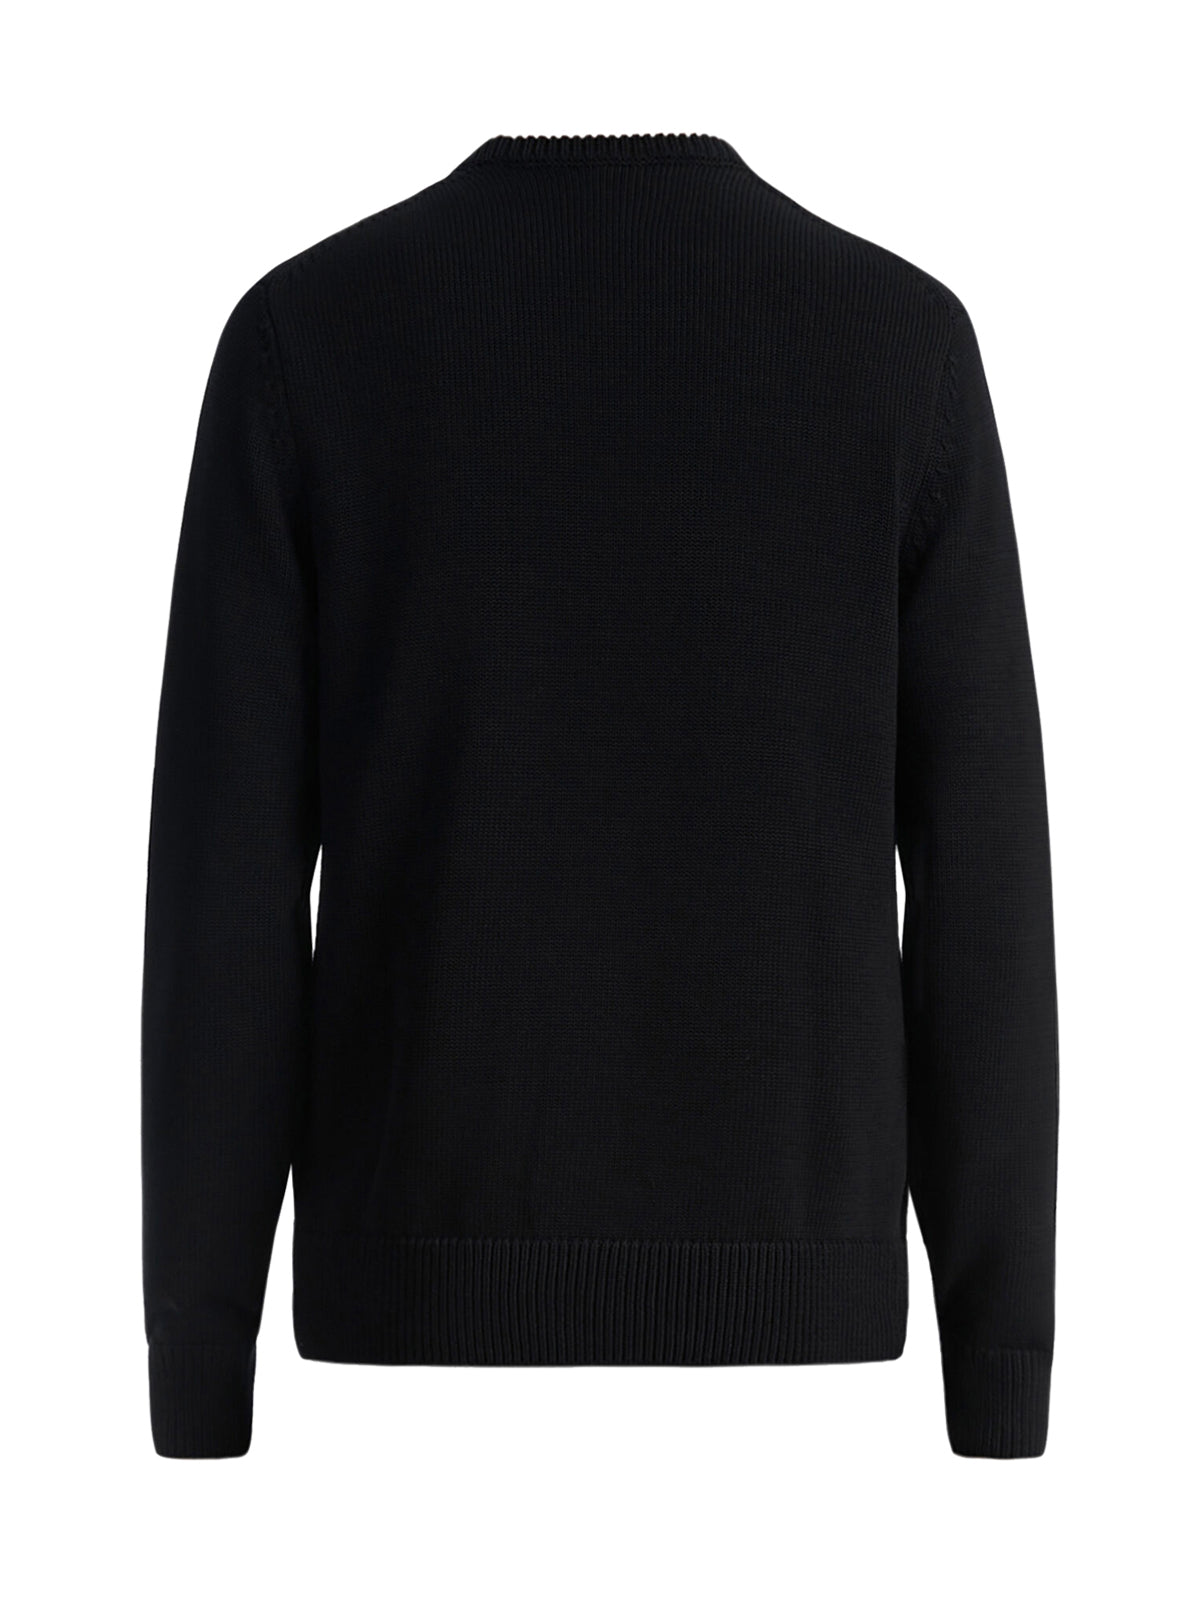 GIVENCHY SWEATER IN COTTON